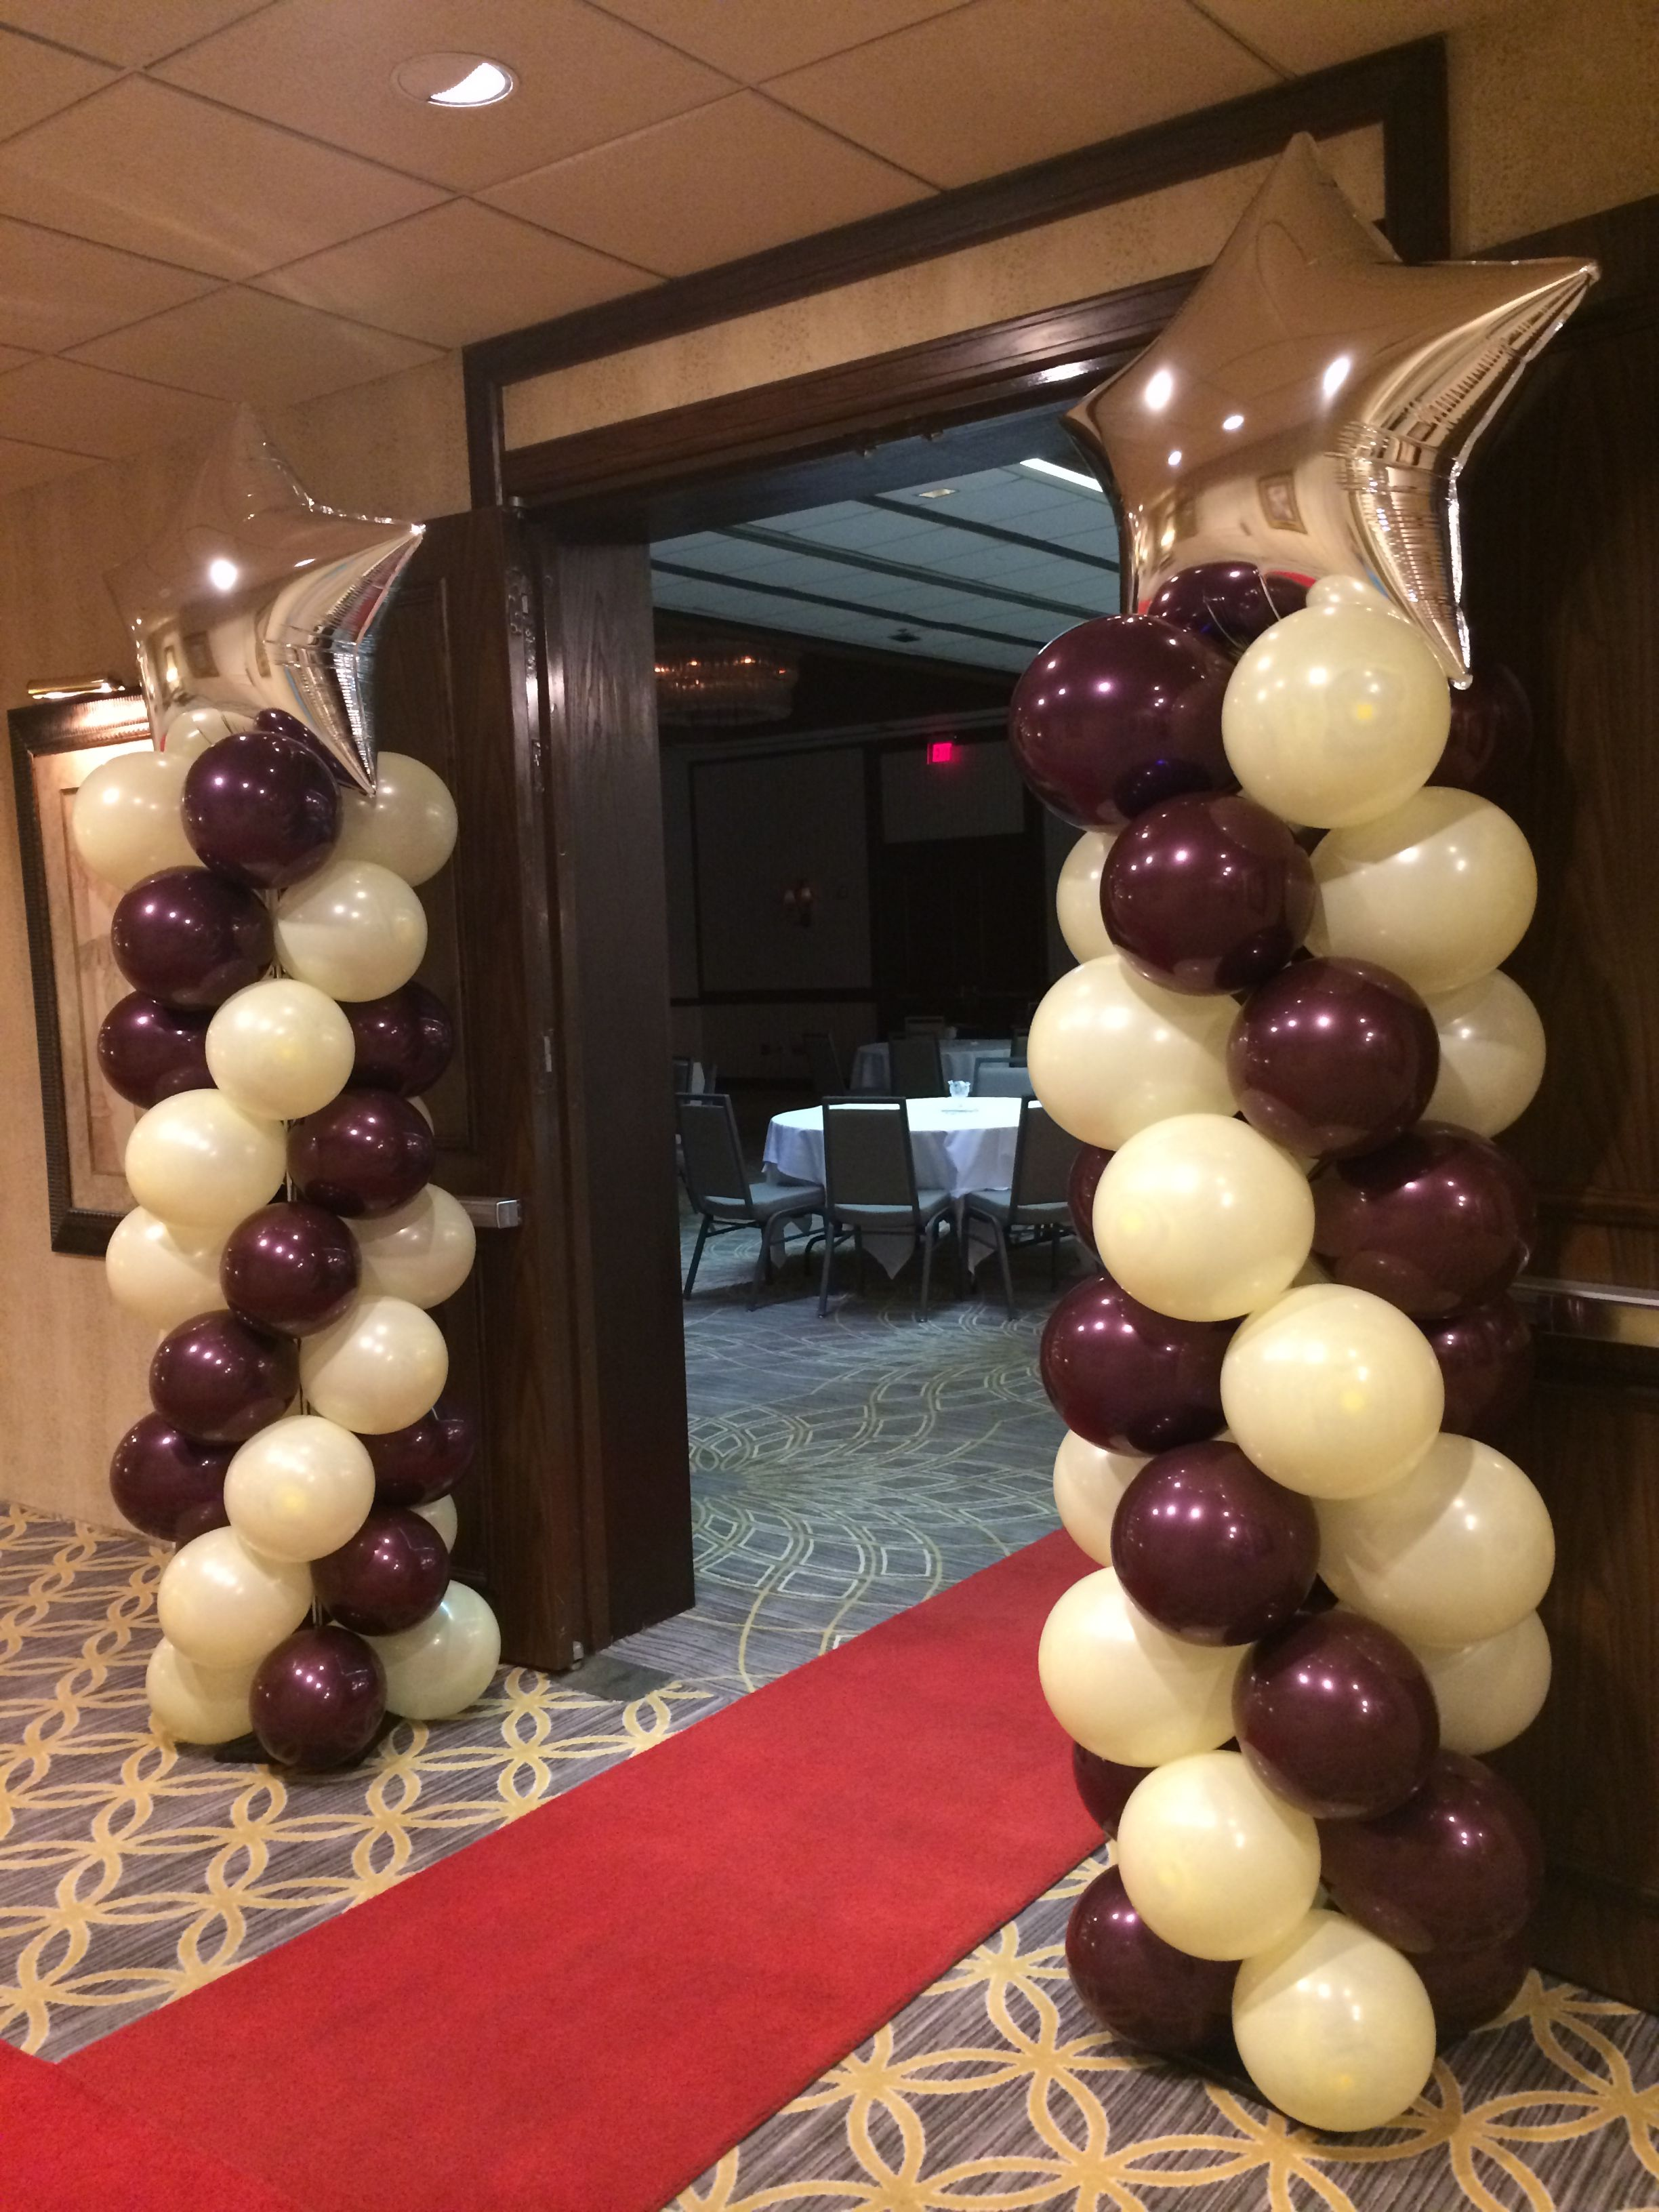 Red Carpet And Balloon Columns With Star For Corporate Breakfast Meeting Www Dreamarkevents Com Graduation Decorations Balloon Columns Balloon Decorations